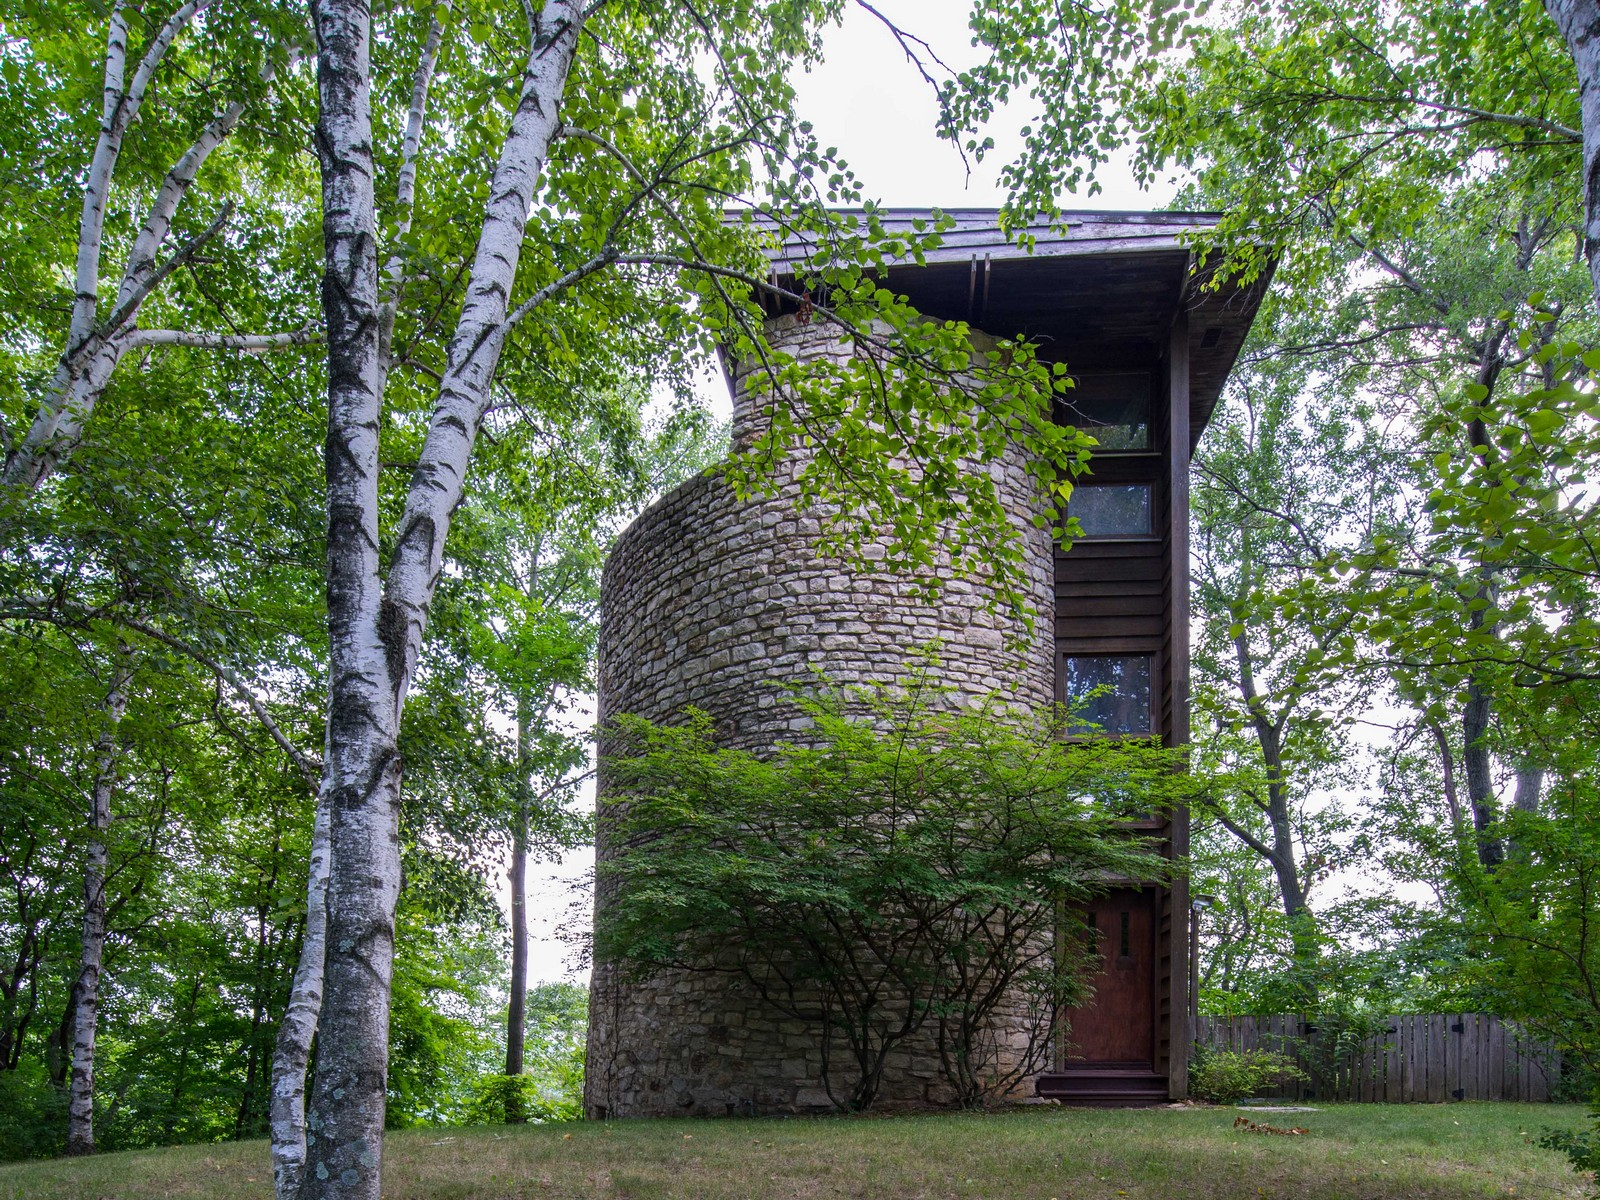 Property For Sale at 100 Herberg Rd , Taylors Falls, MN 55084